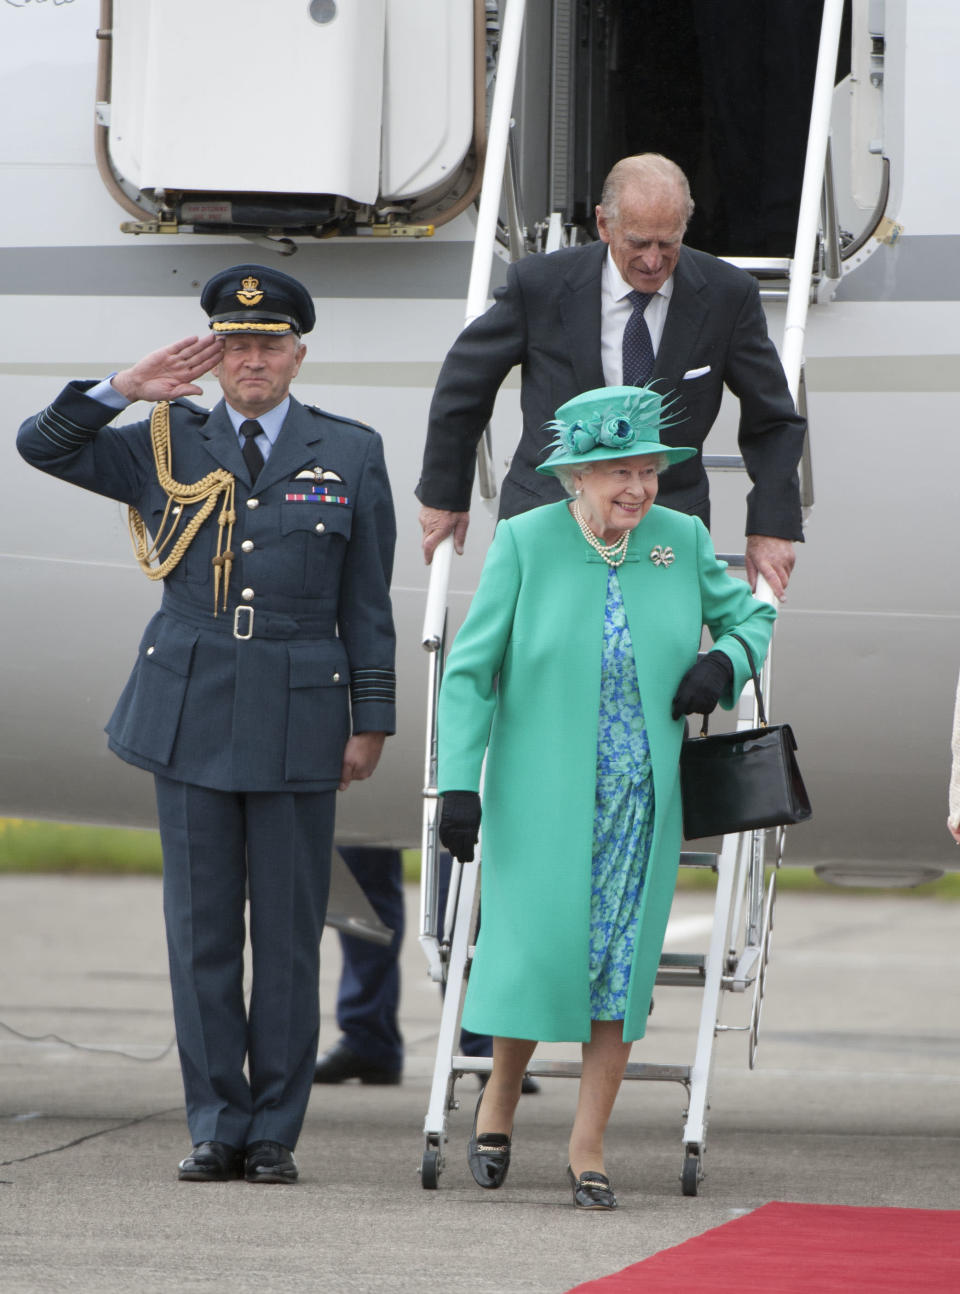 <p>Women in the family often wear colours to honour the country they're visiting, like Middleton donning a maple leaf hat in Canada or the queen wearing jade green when going to Ireland. </p>